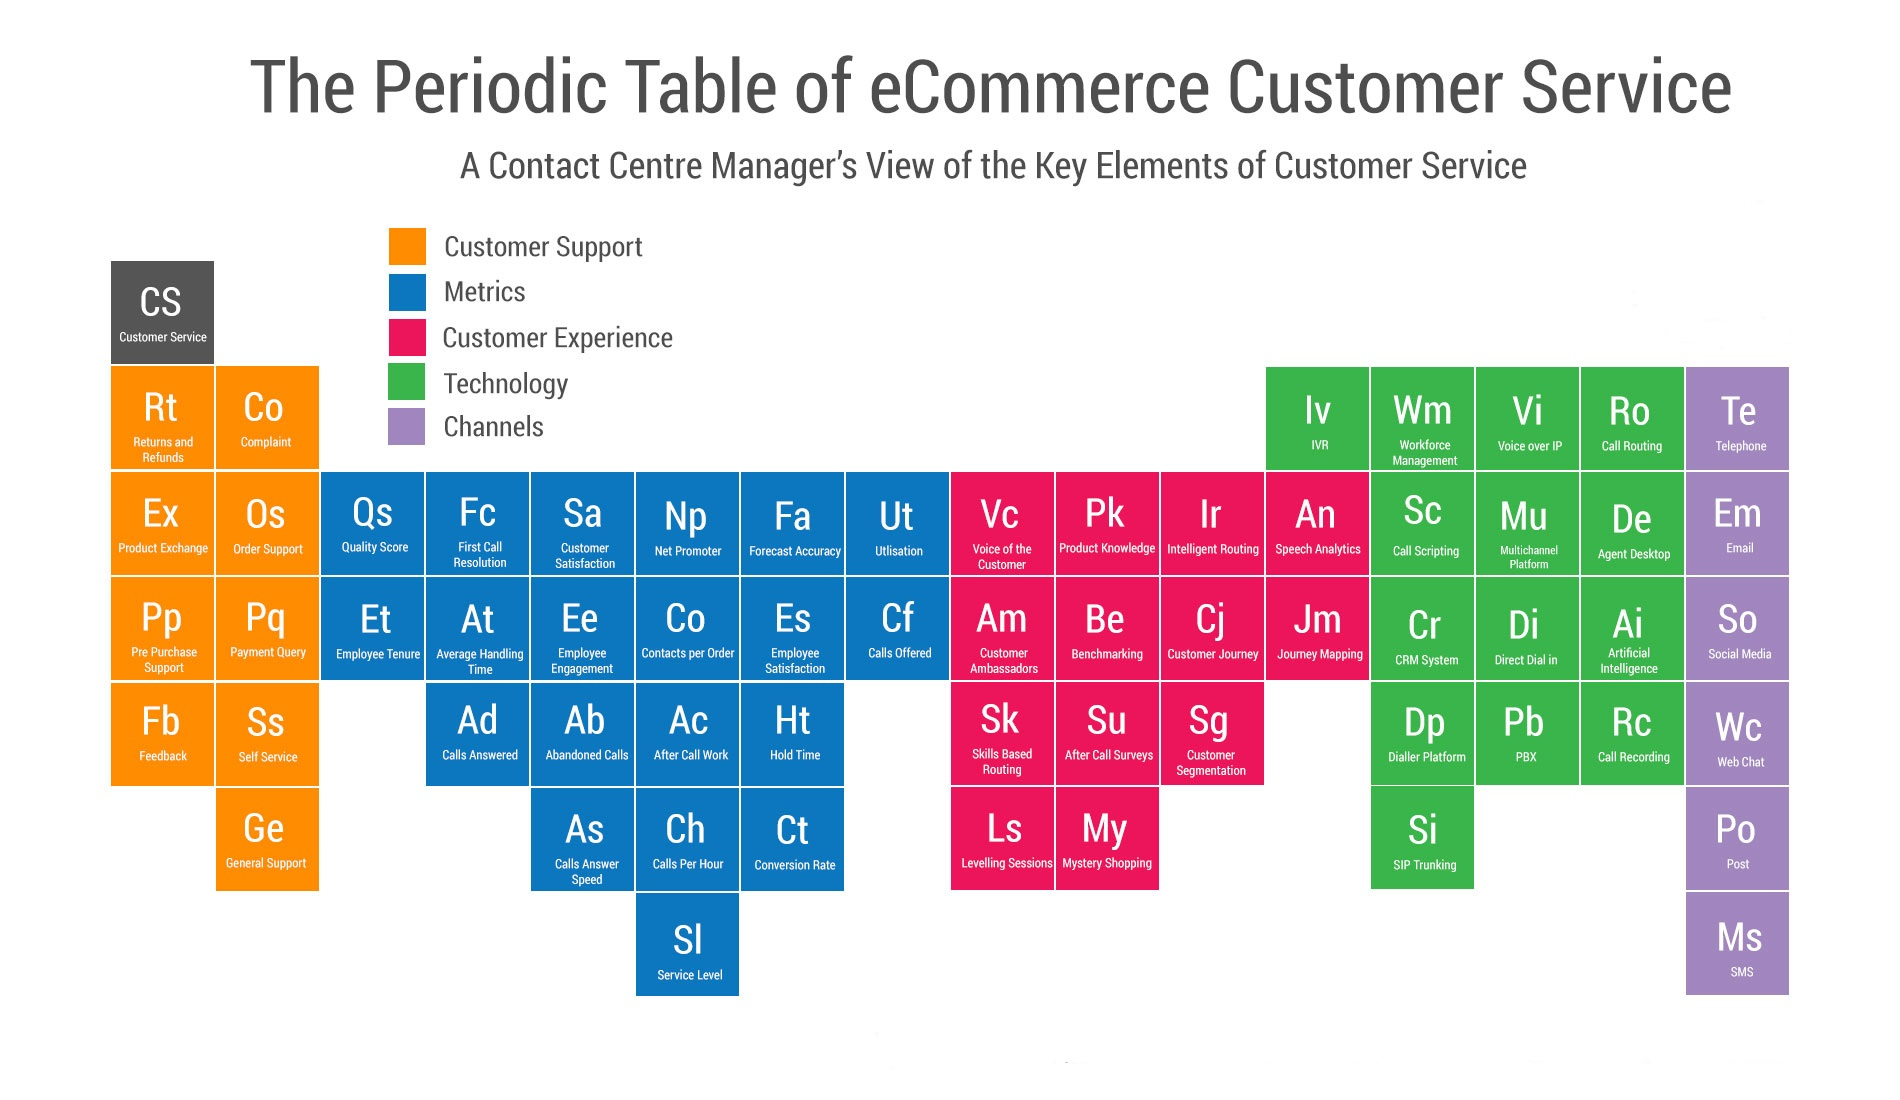 Periodic-Table-of-Customer-Service.jpg